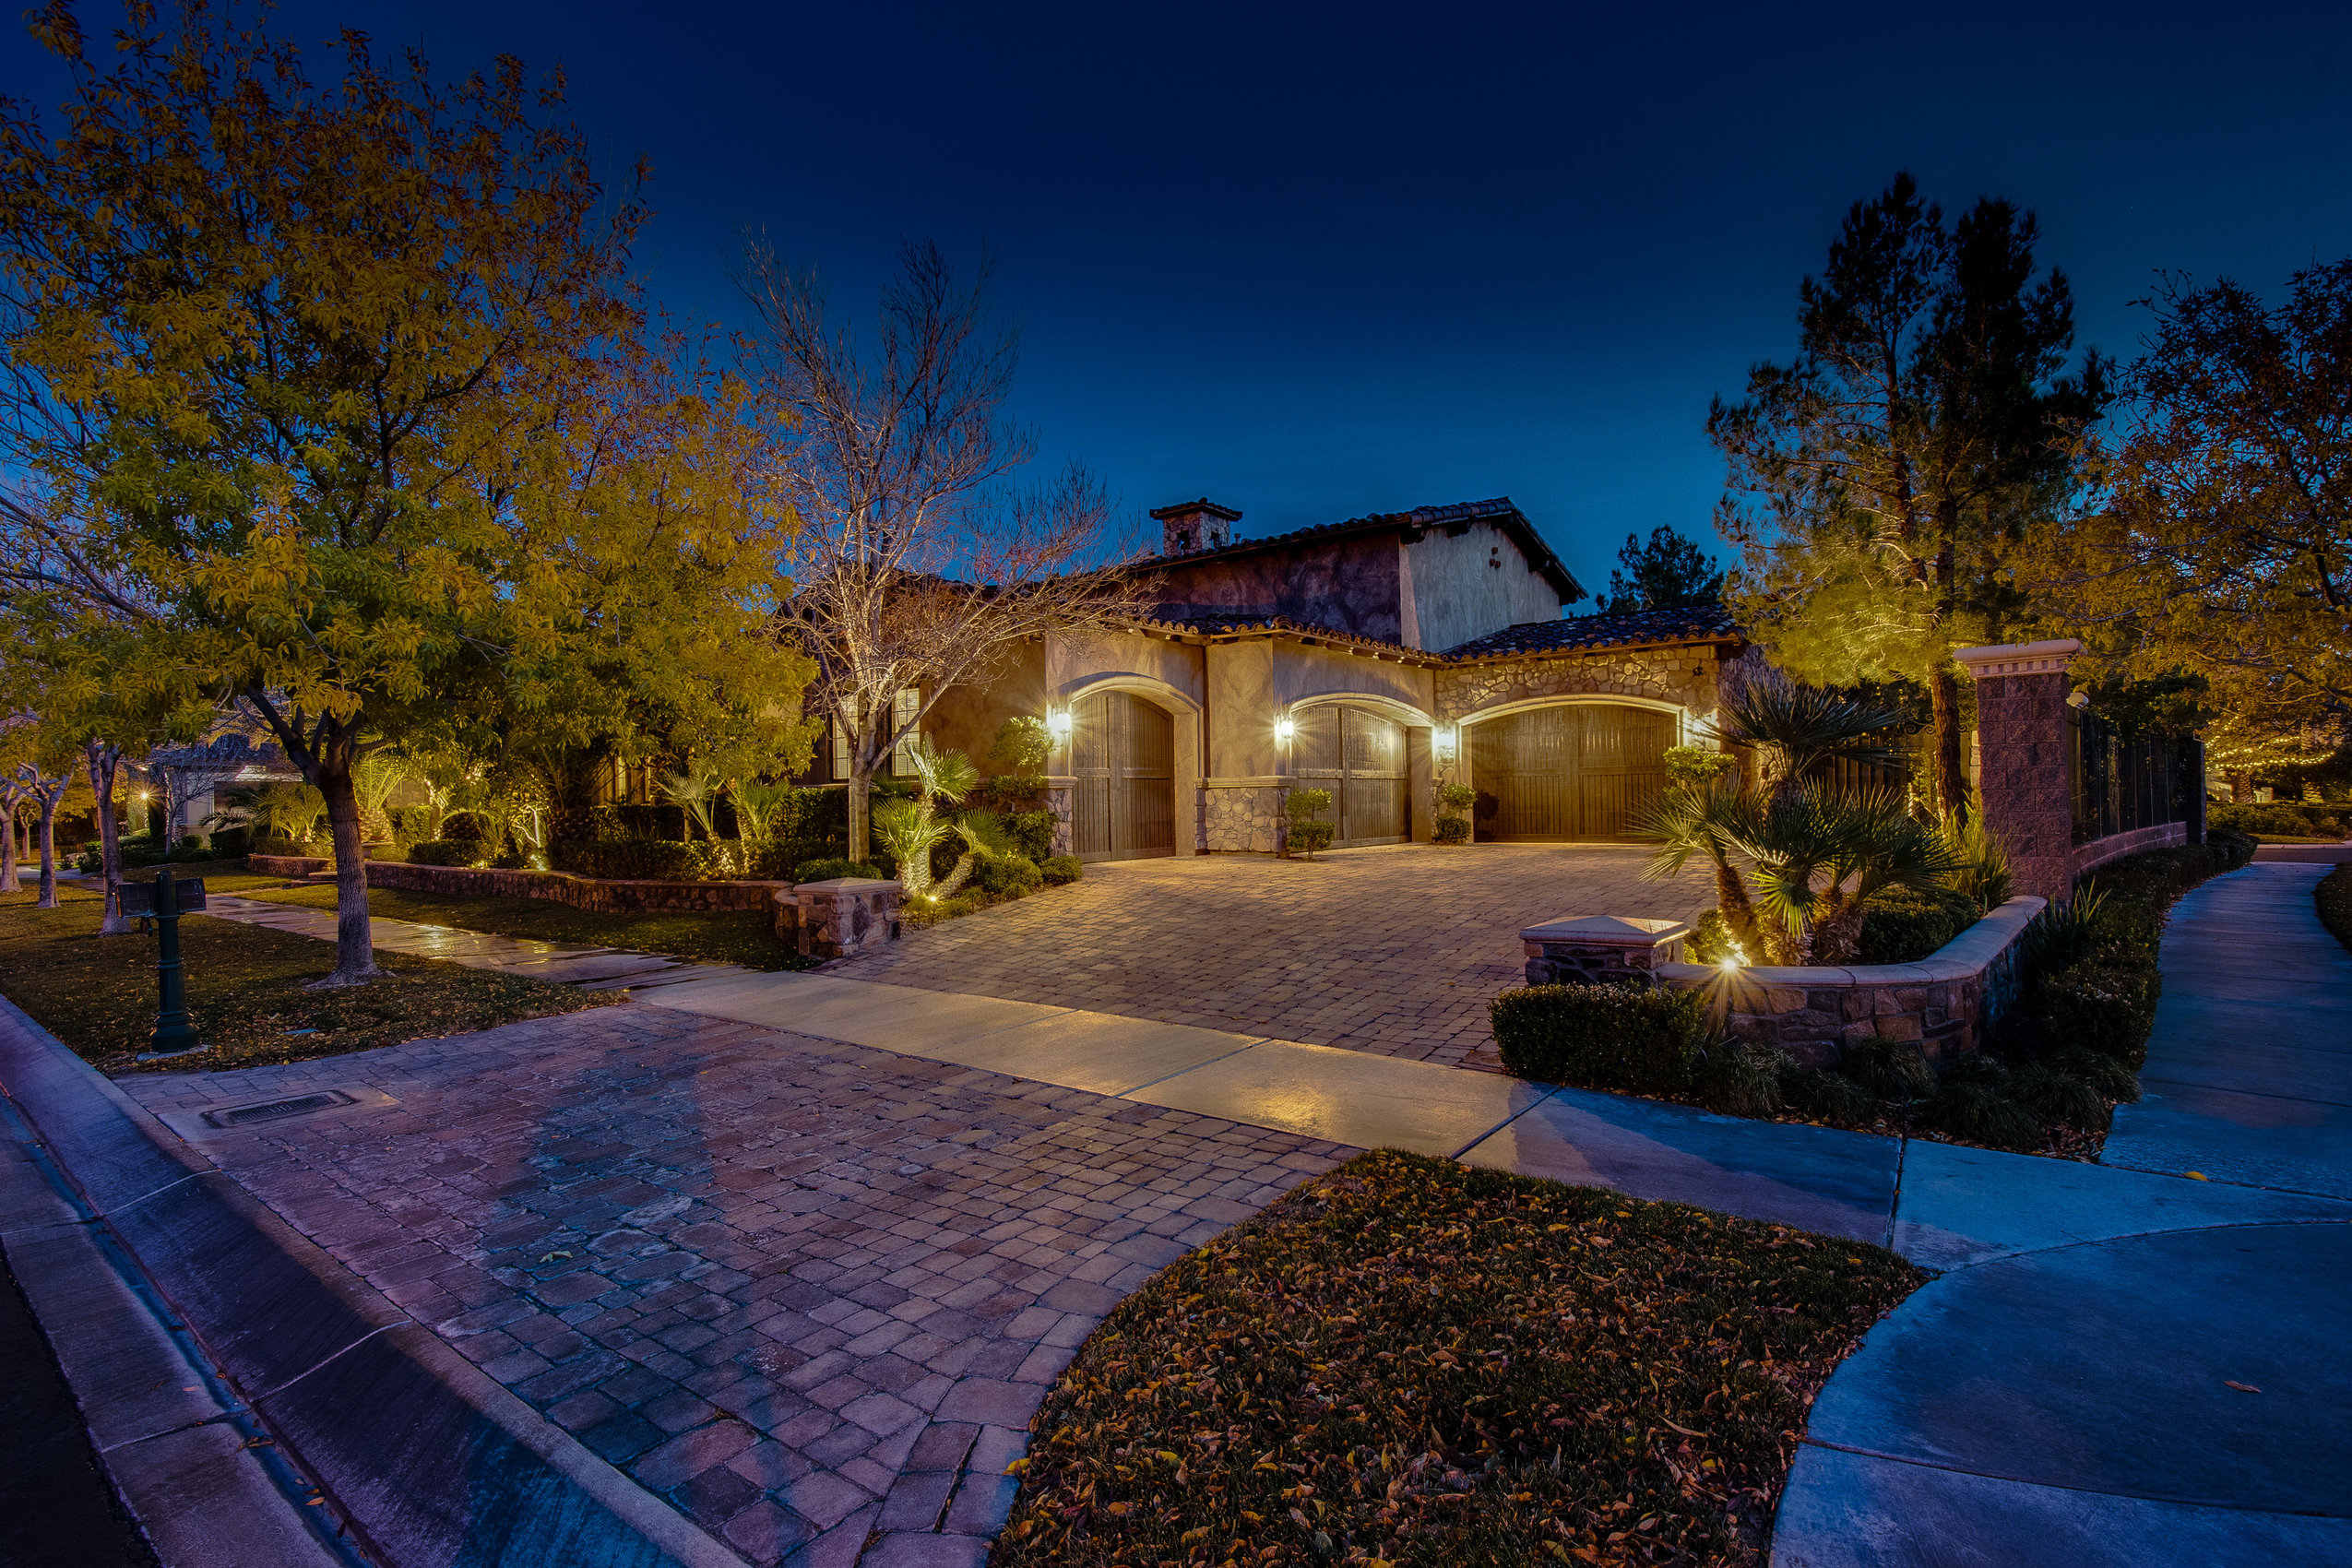 7 Shadow Hills Dr, Las Vegas, NV 89141 - $3,199,900 home for sale, house images, photos and pics gallery